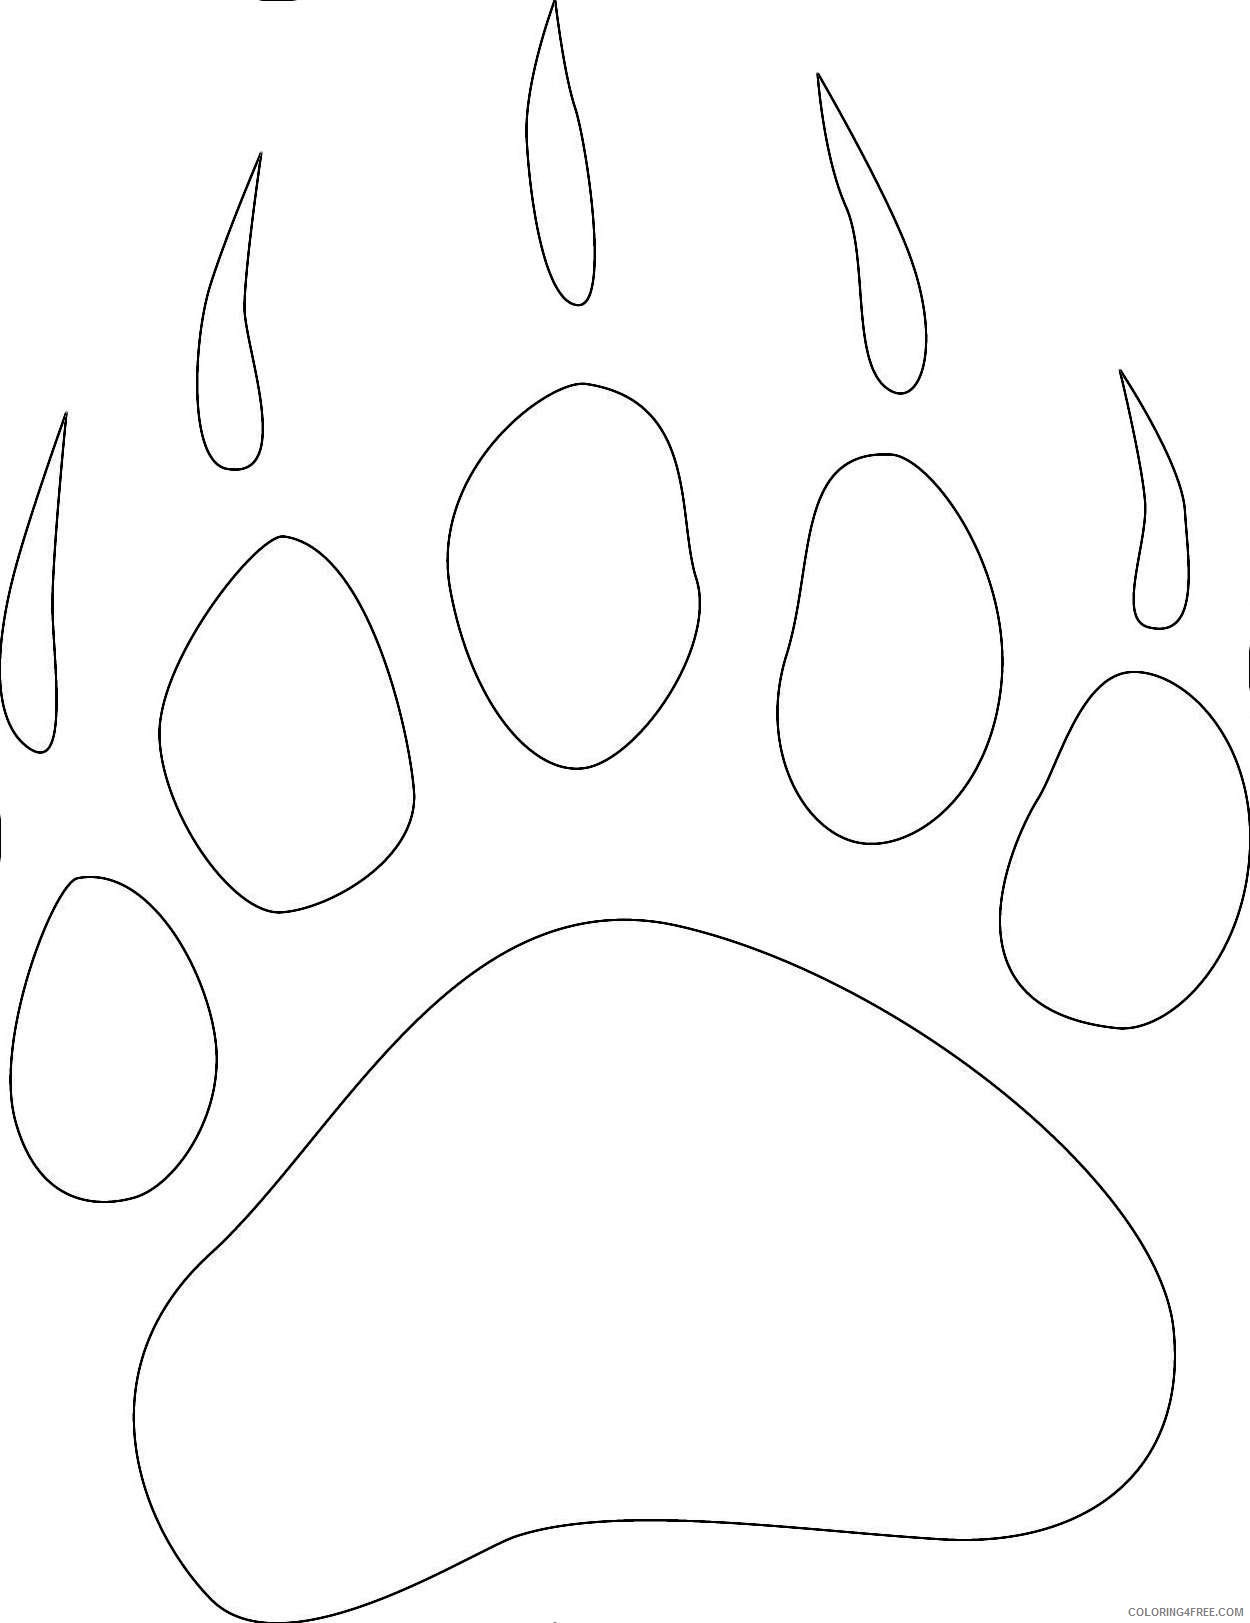 Bear Paw Coloring Pages Pictures To Pin